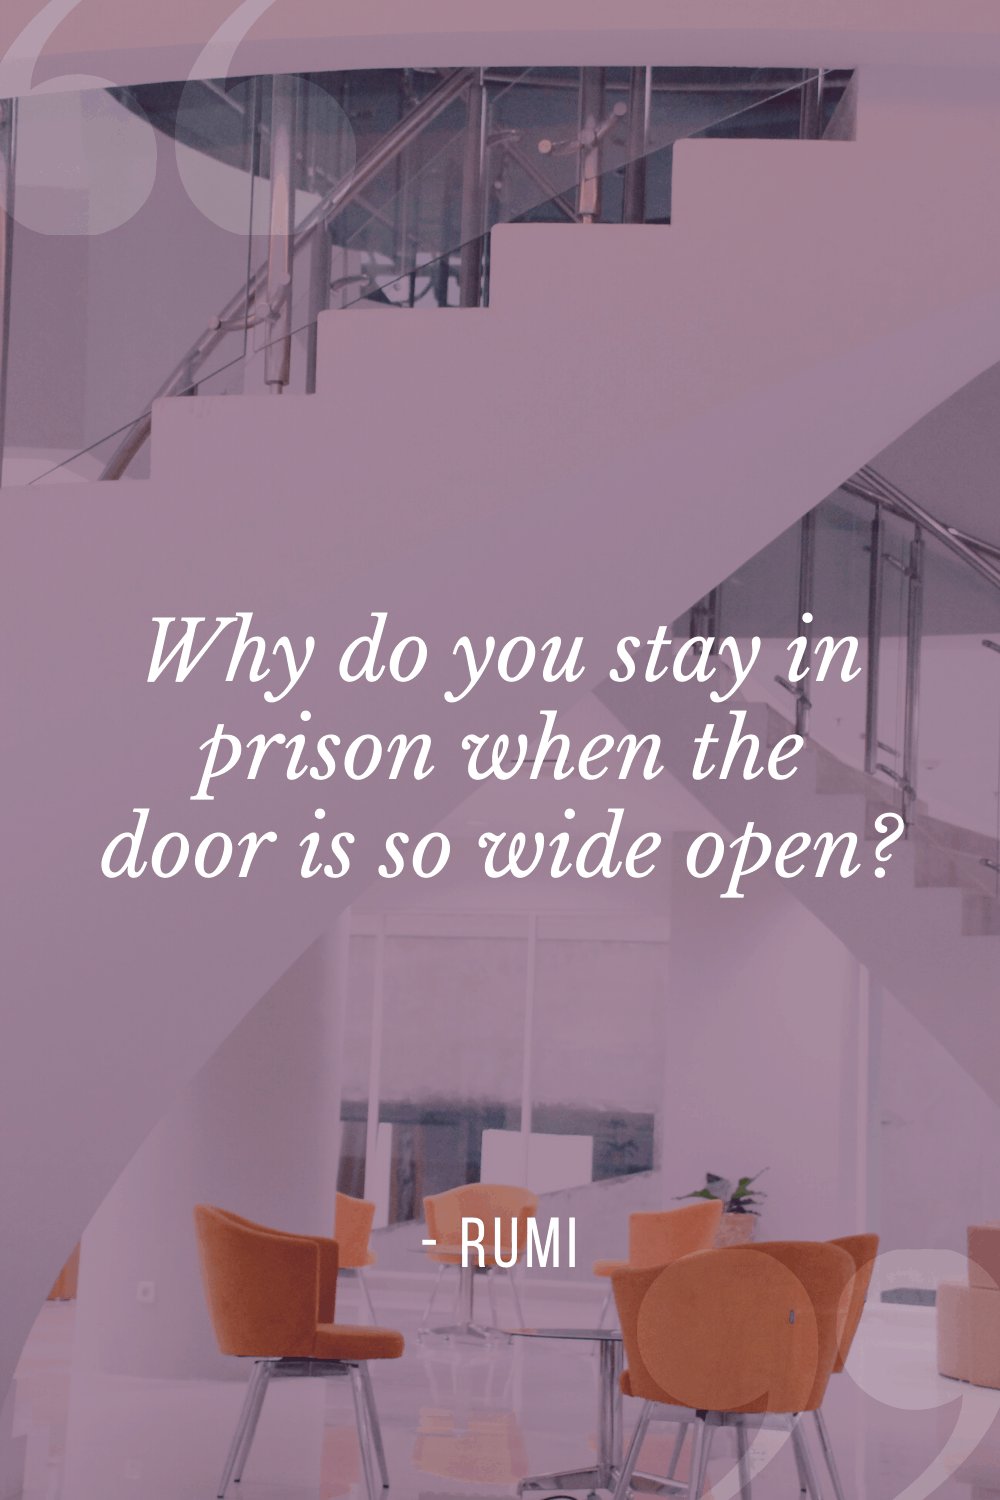 """Why do you stay in prison when the door is so wide open?"", Rumi"